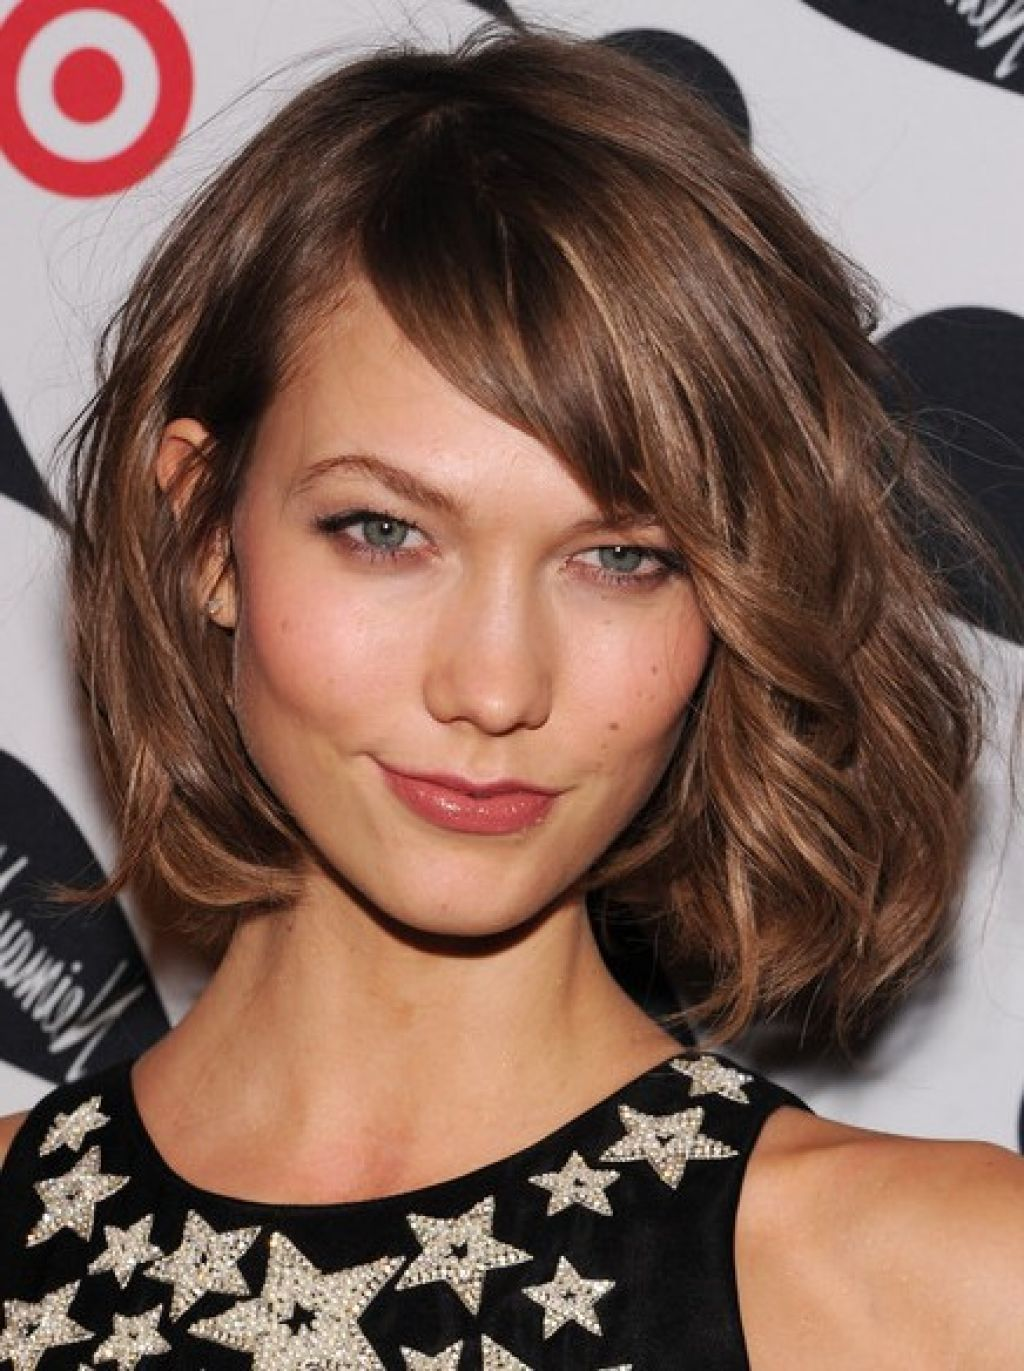 Karlie Kloss Her Hair Decided To Blonde The First Color Her Hairs